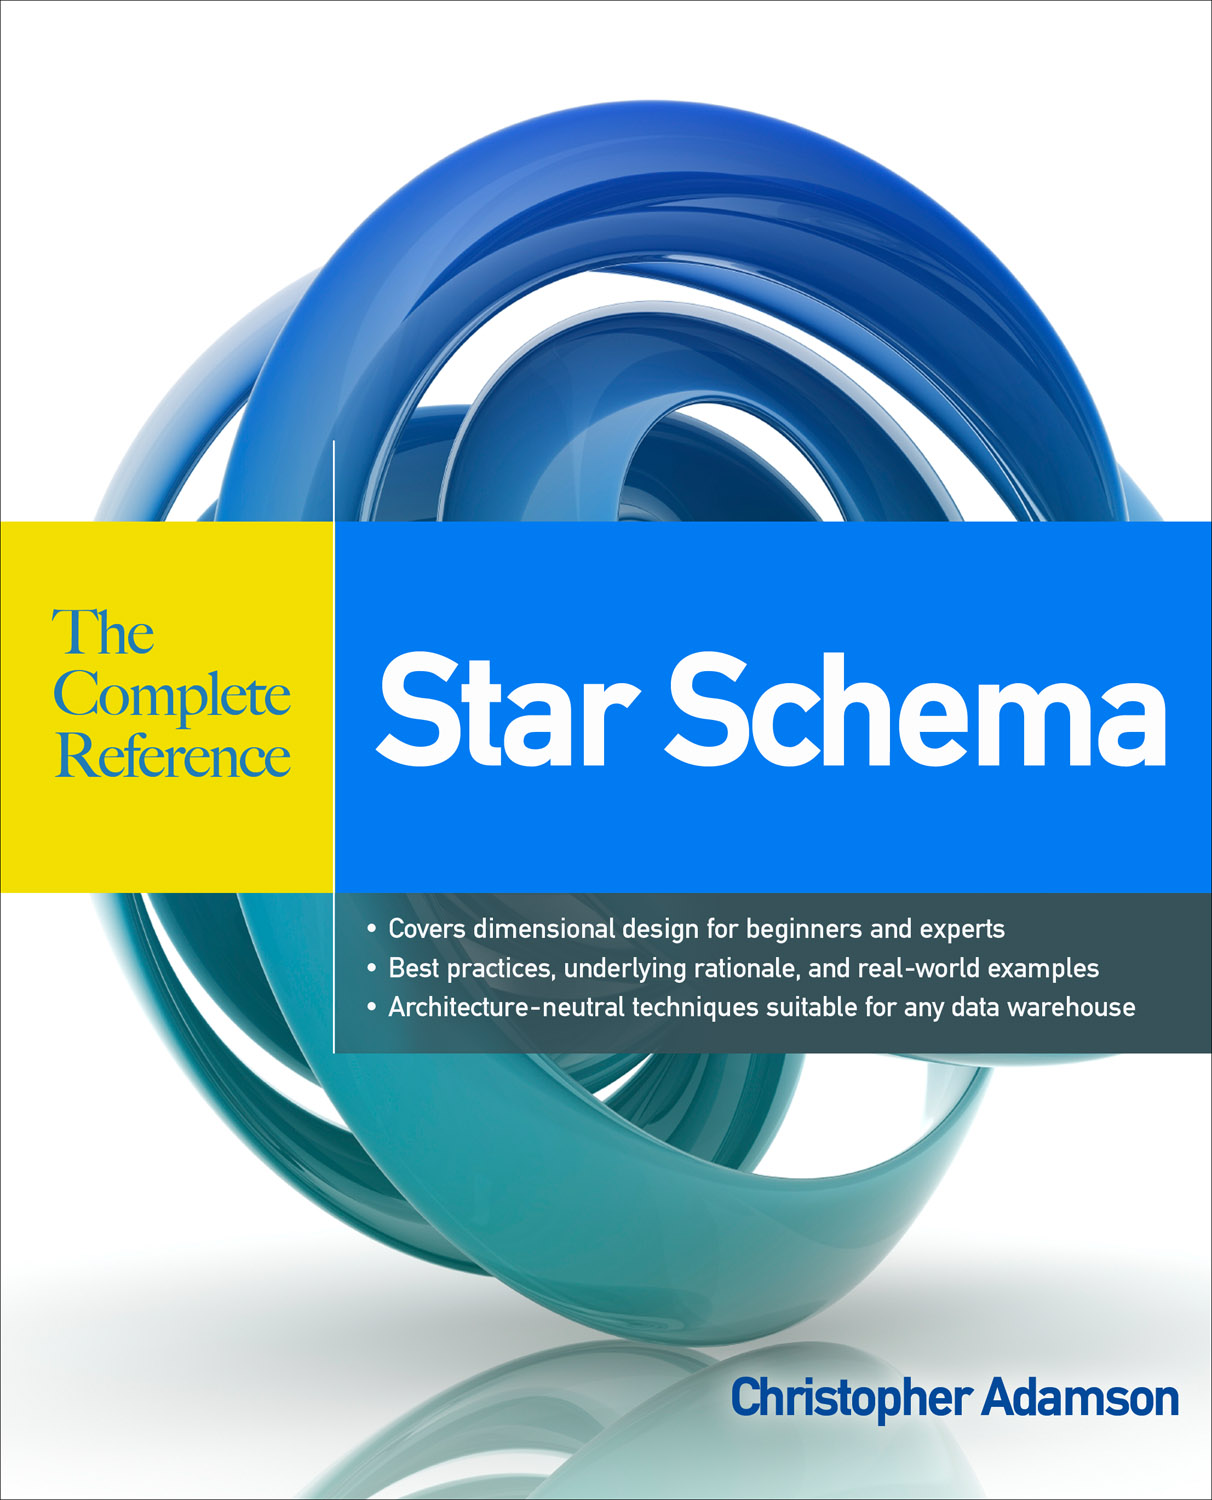 Book Cover: Star Schema The Complete Reference by Christopher Adamson